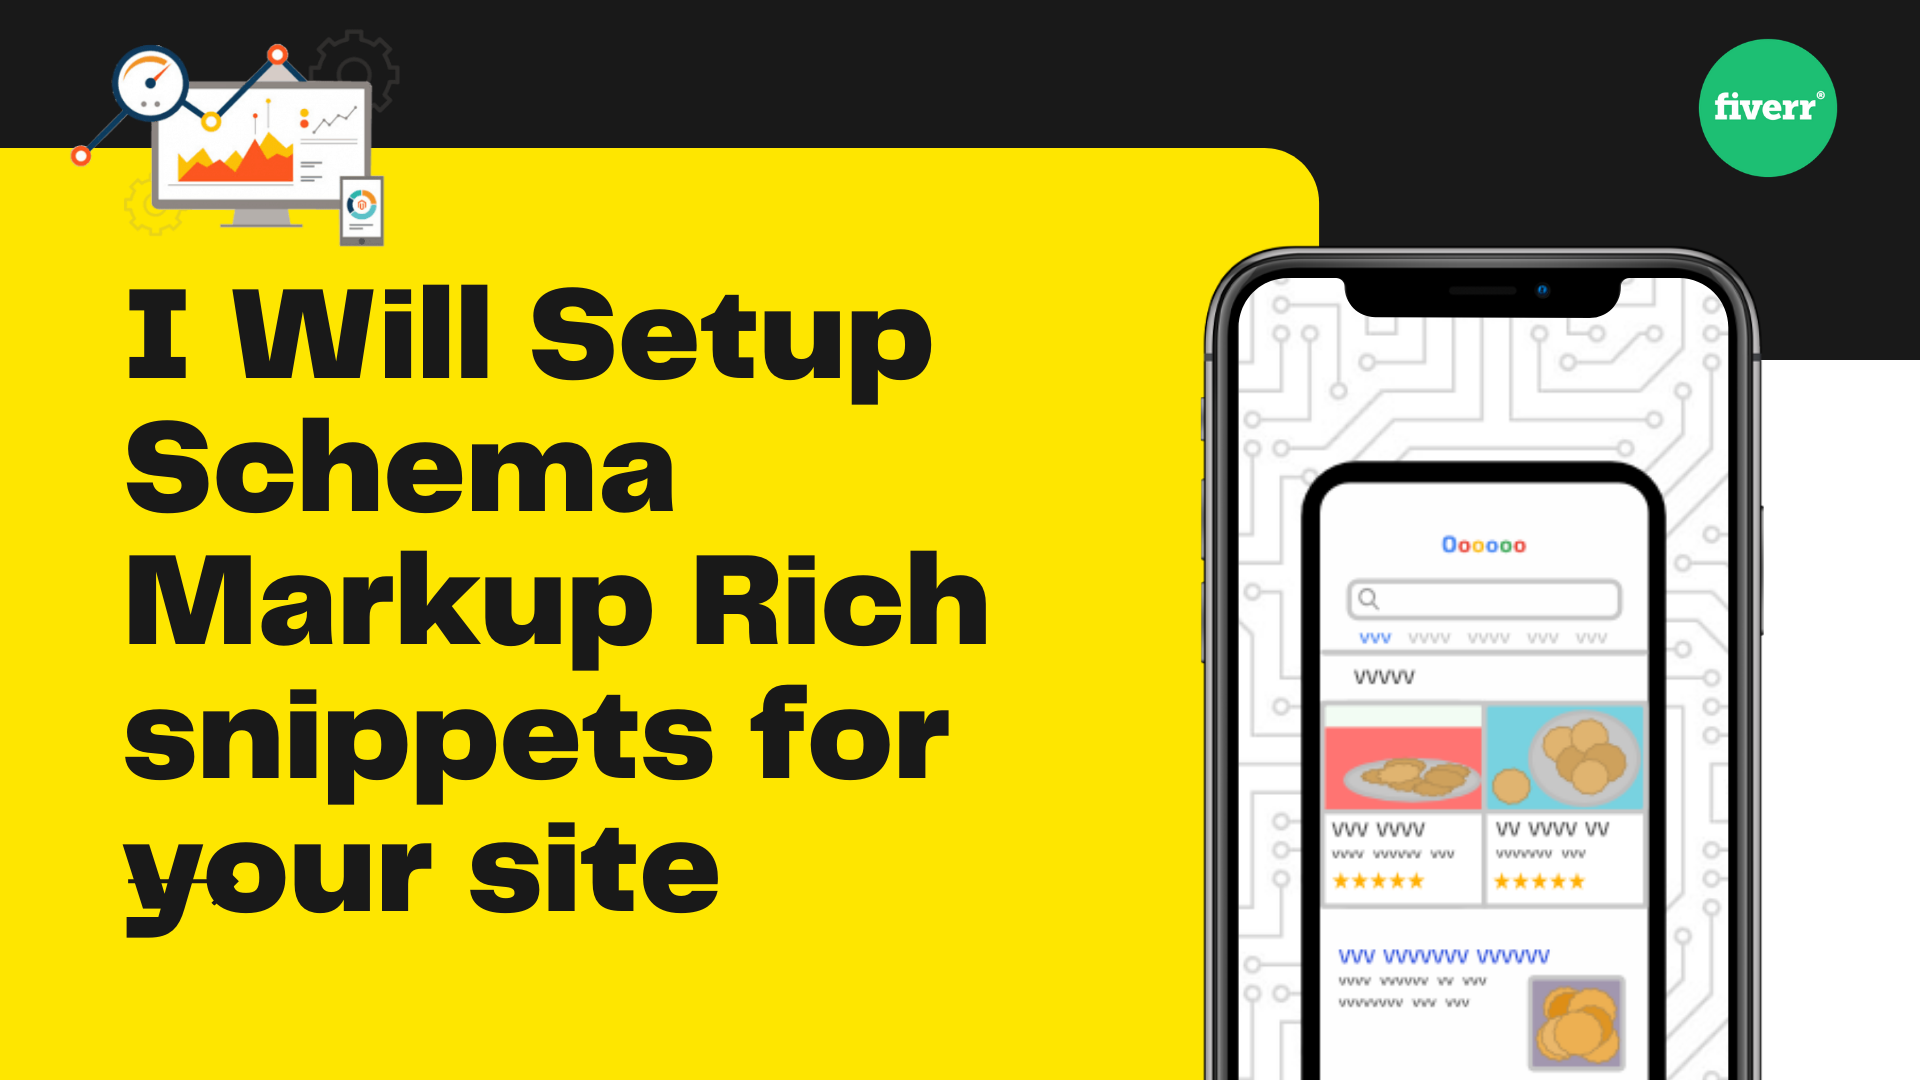 I will setup schema markup rich snippets for your site